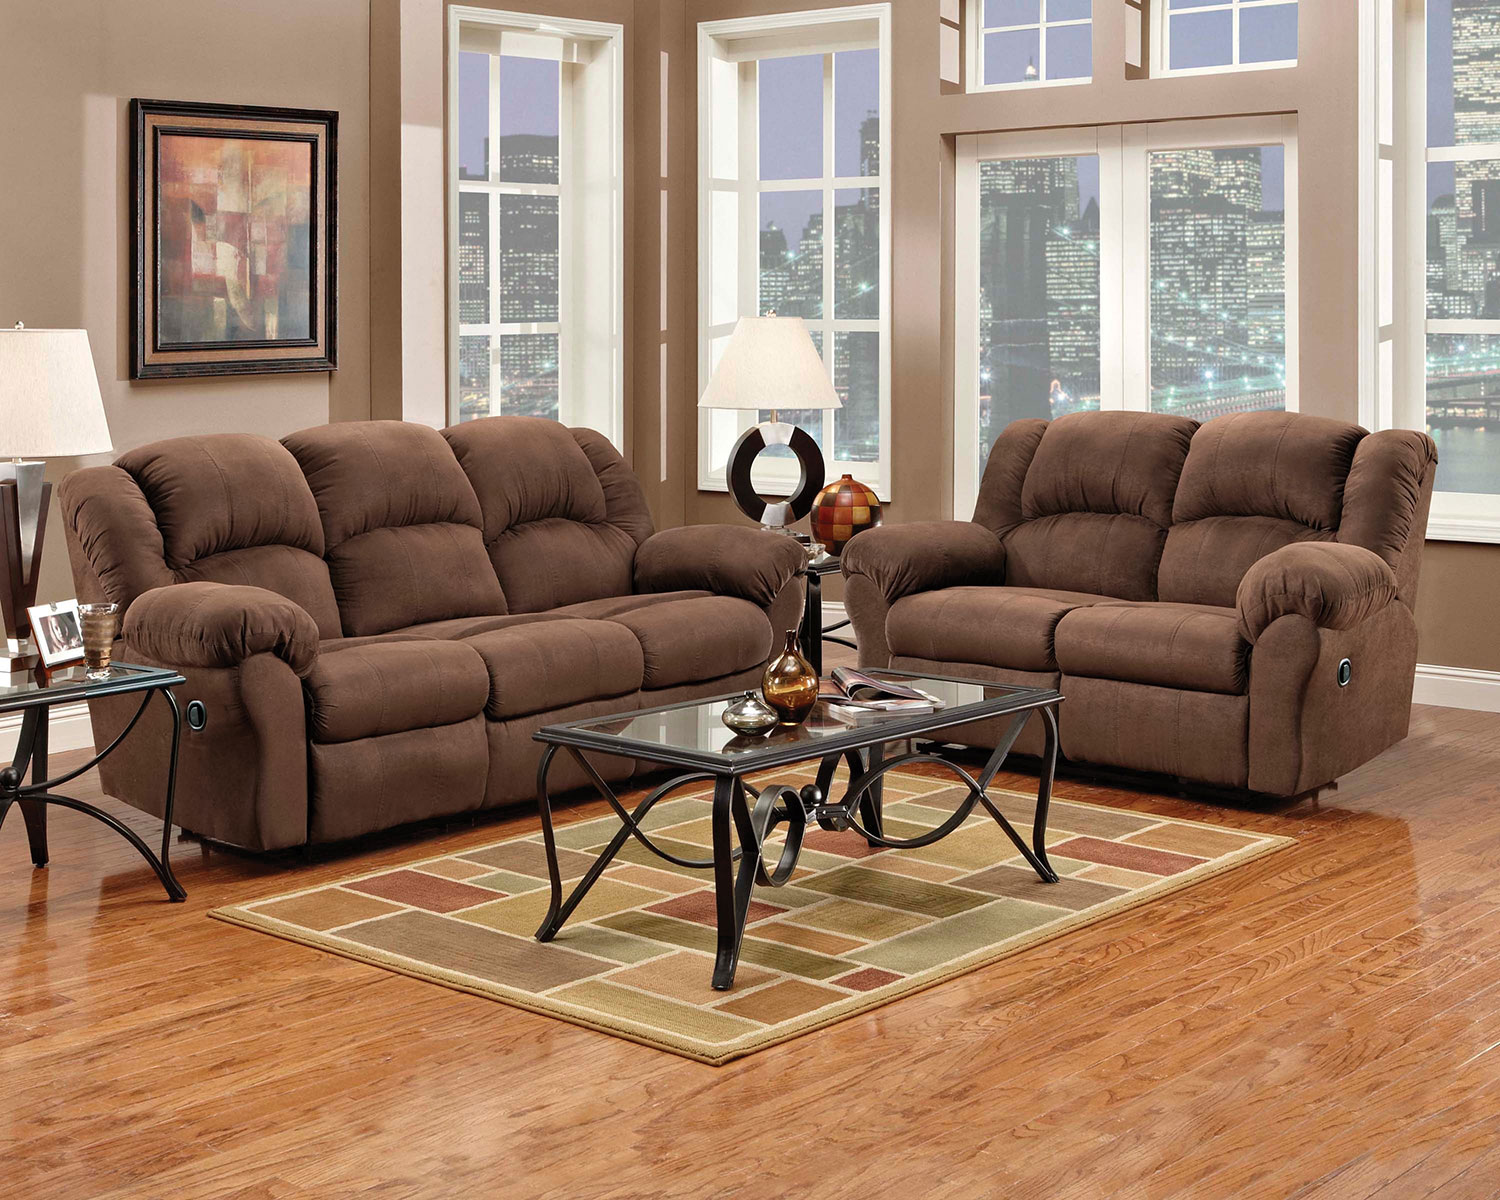 Hover/Touch to Zoom - Decker Reclining Sofa - Chocolate Levin Furniture